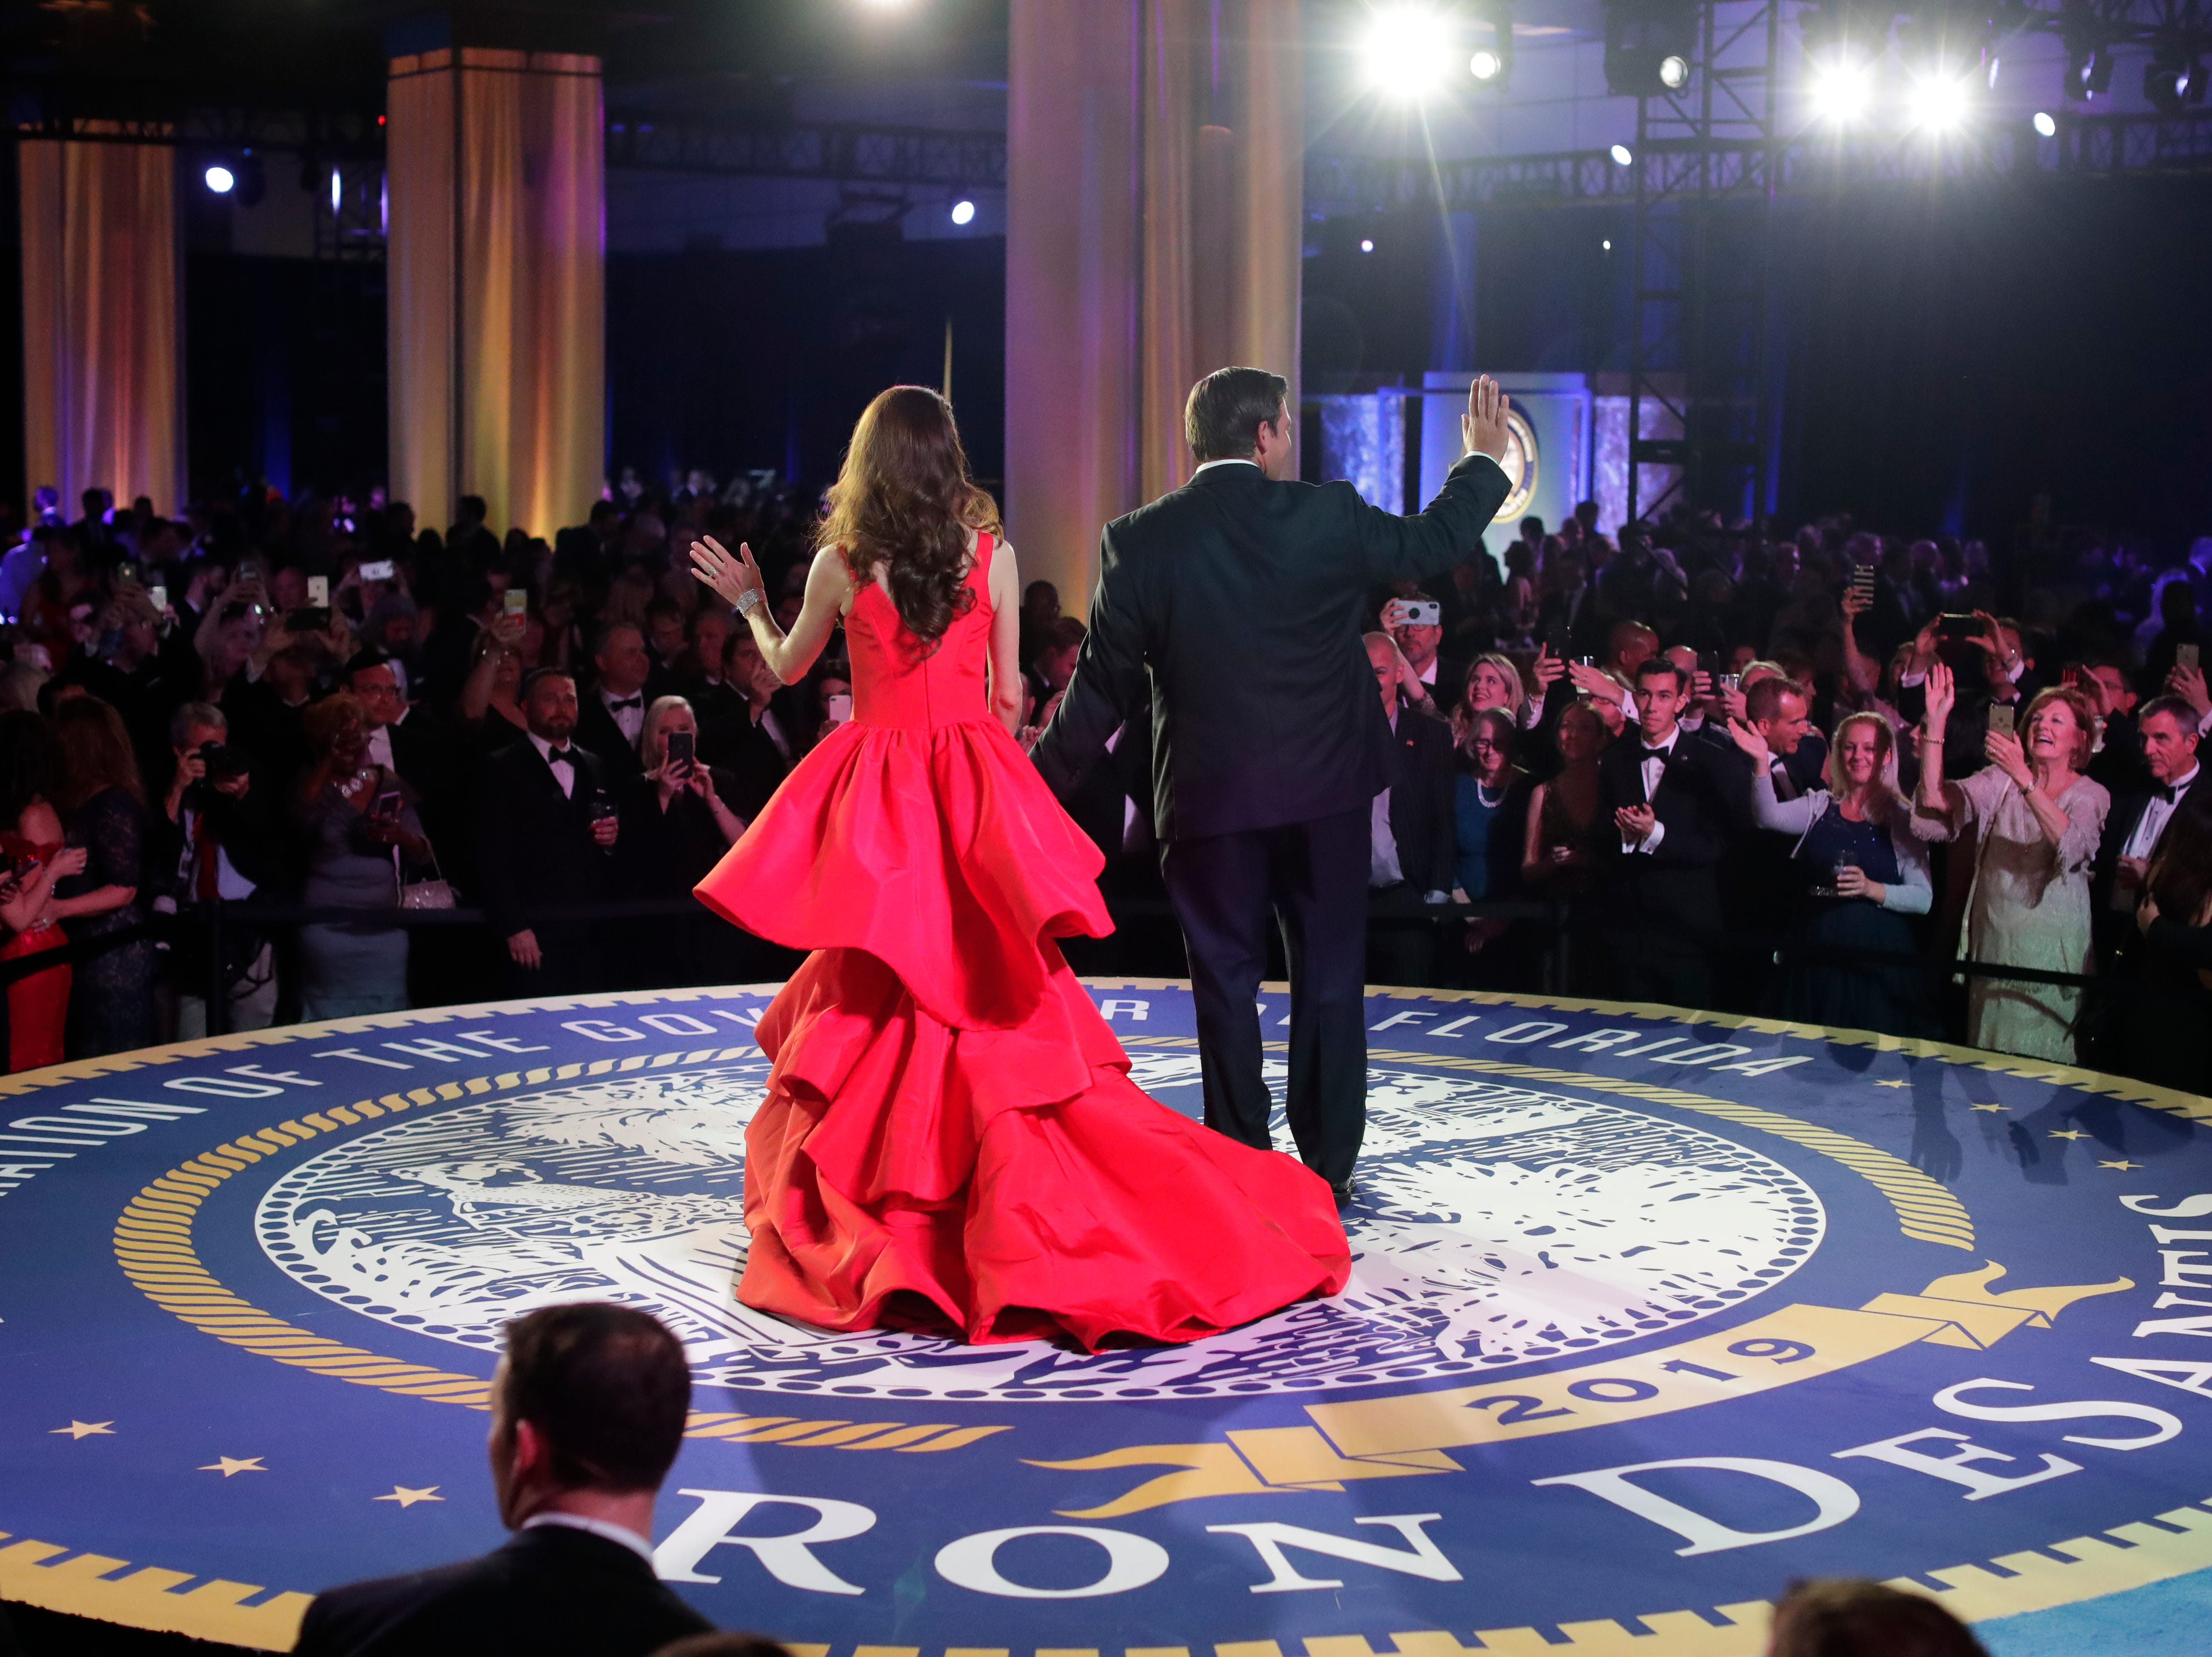 Hundreds of guests from all over Florida attend Florida's 46th Governor's Inaugural Ball at the Tucker Civic Center, Tuesday, Jan. 8, 2019. First lady Casey DeSantis and Gov. Ron DeSantis wave to the crowd before exiting the stage.